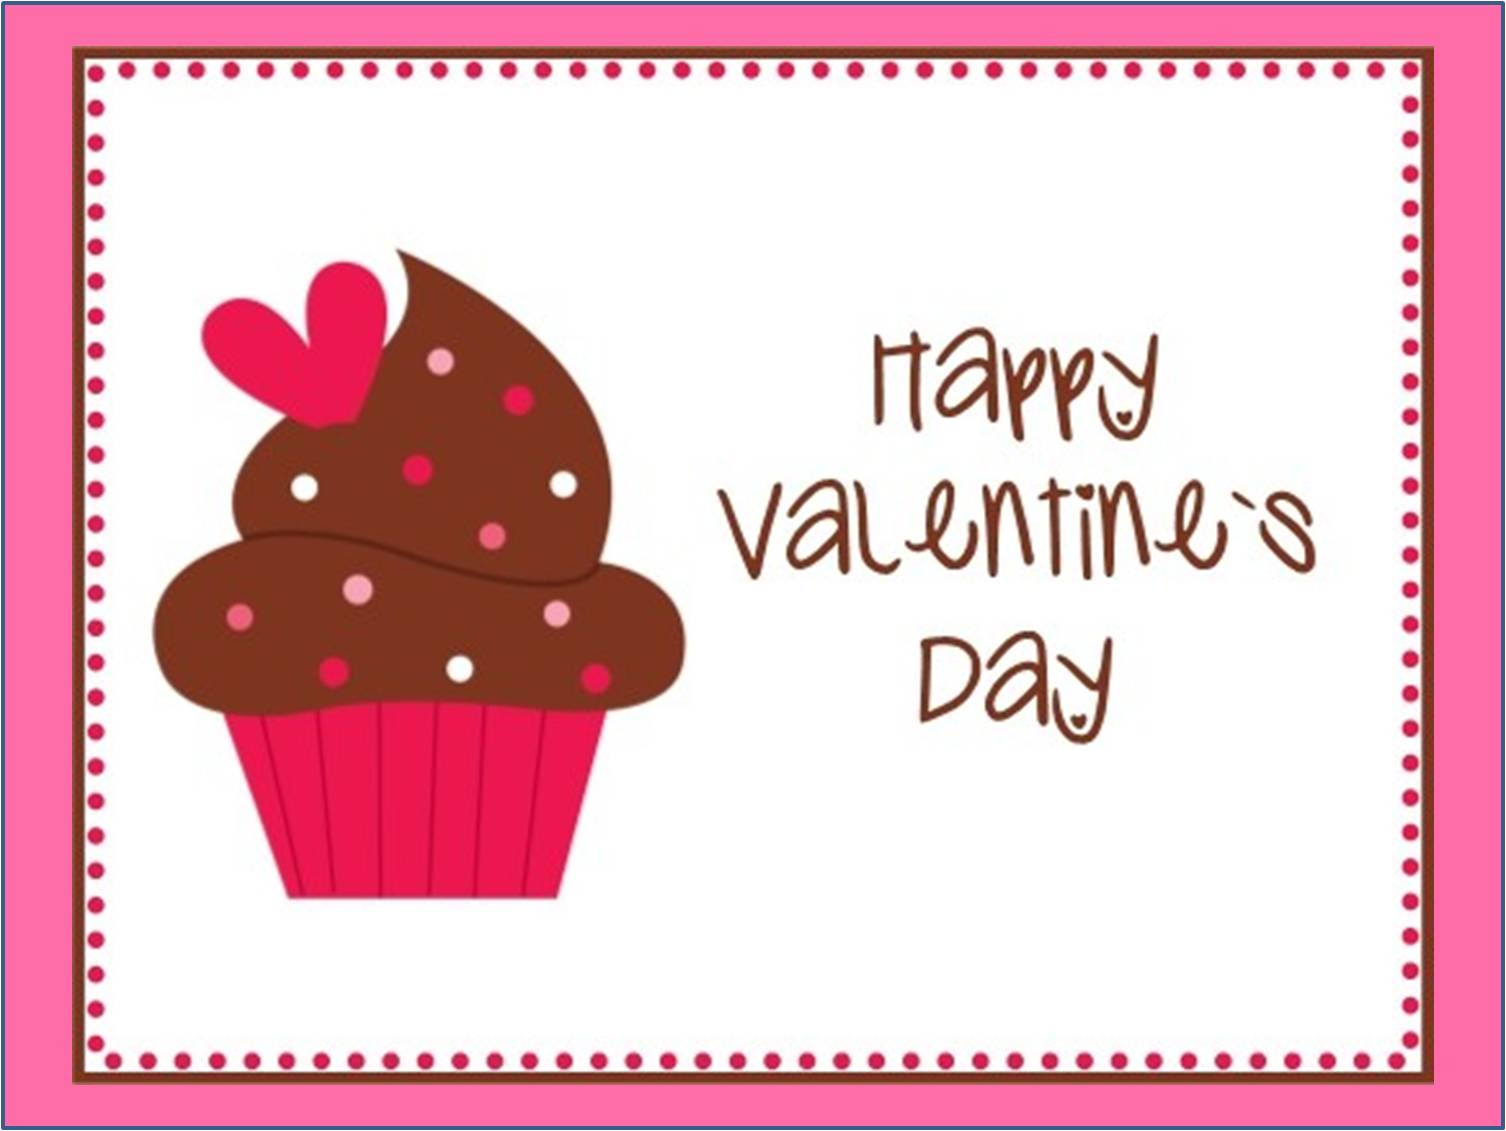 Valentines day clip art for valentine.